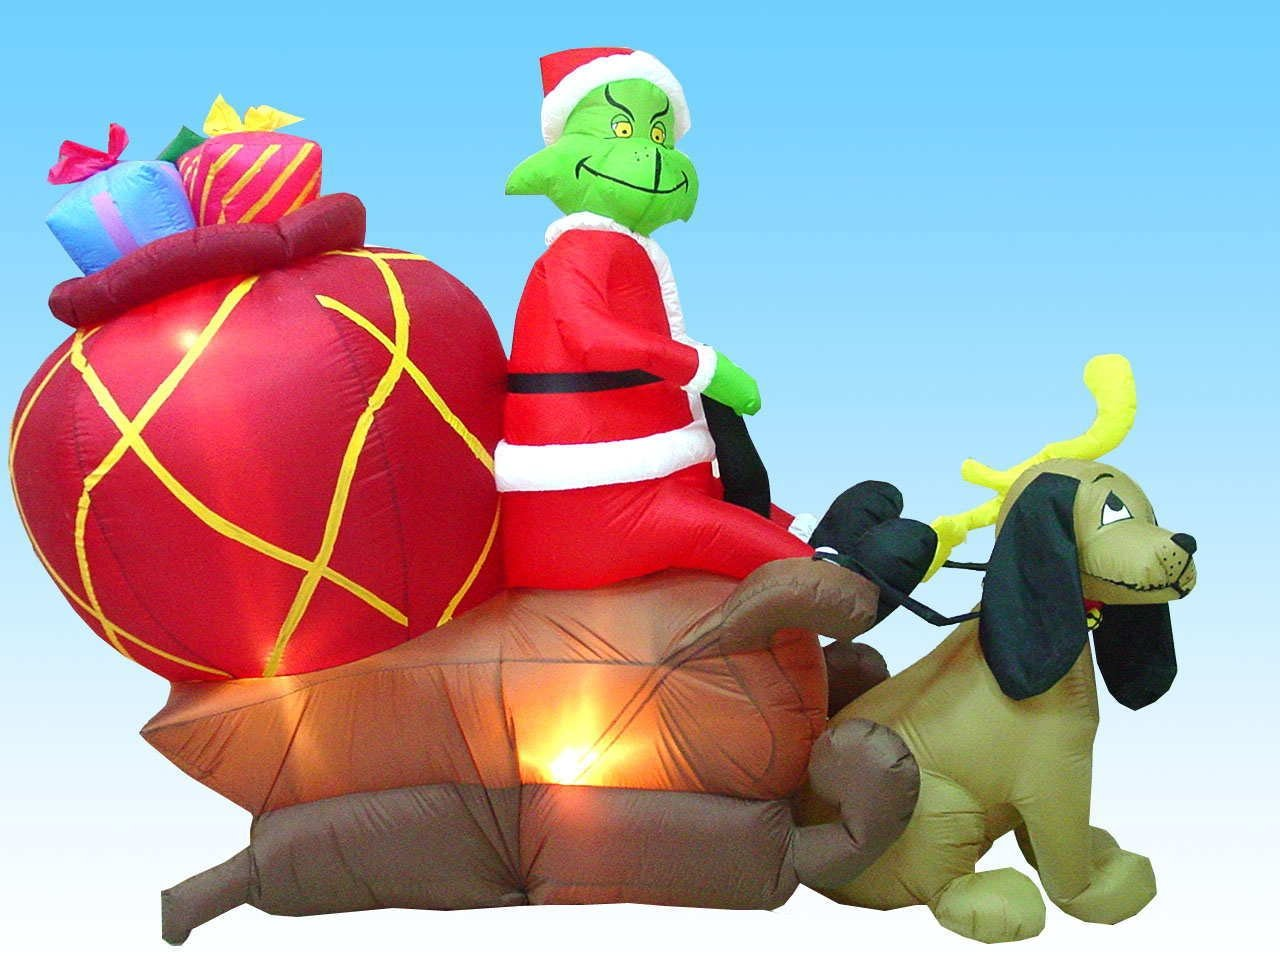 Amazon.com: Airblown Inflatable 6 Ft Tall Grinch in a Sleigh with ...